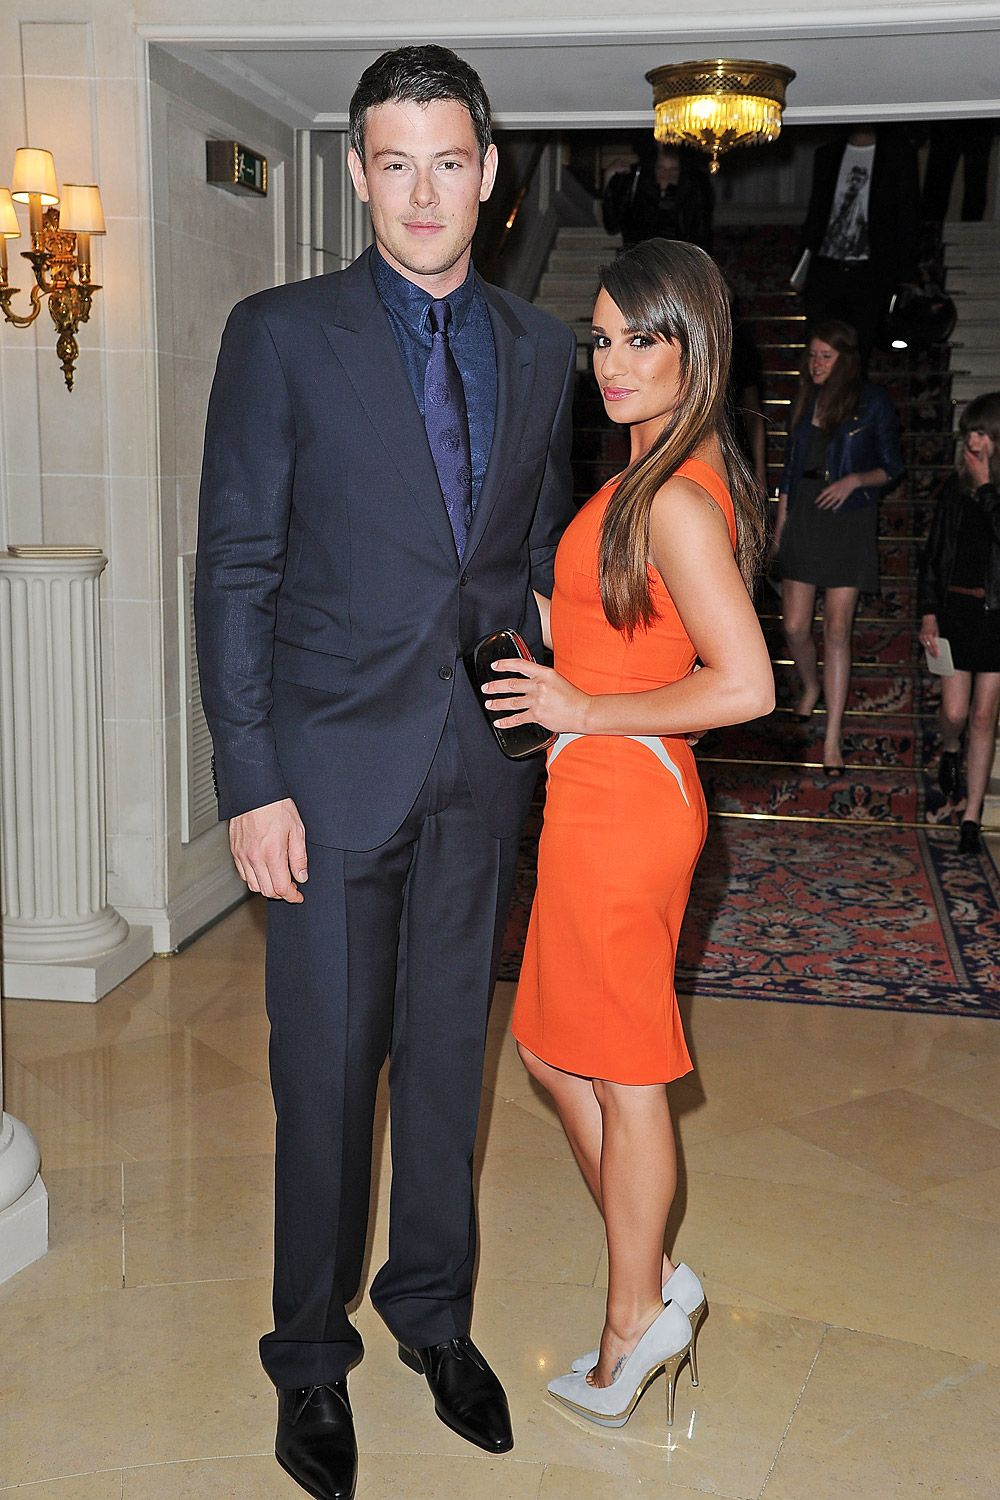 A Timeline Of Cory Monteith And Lea Michele s Relationship